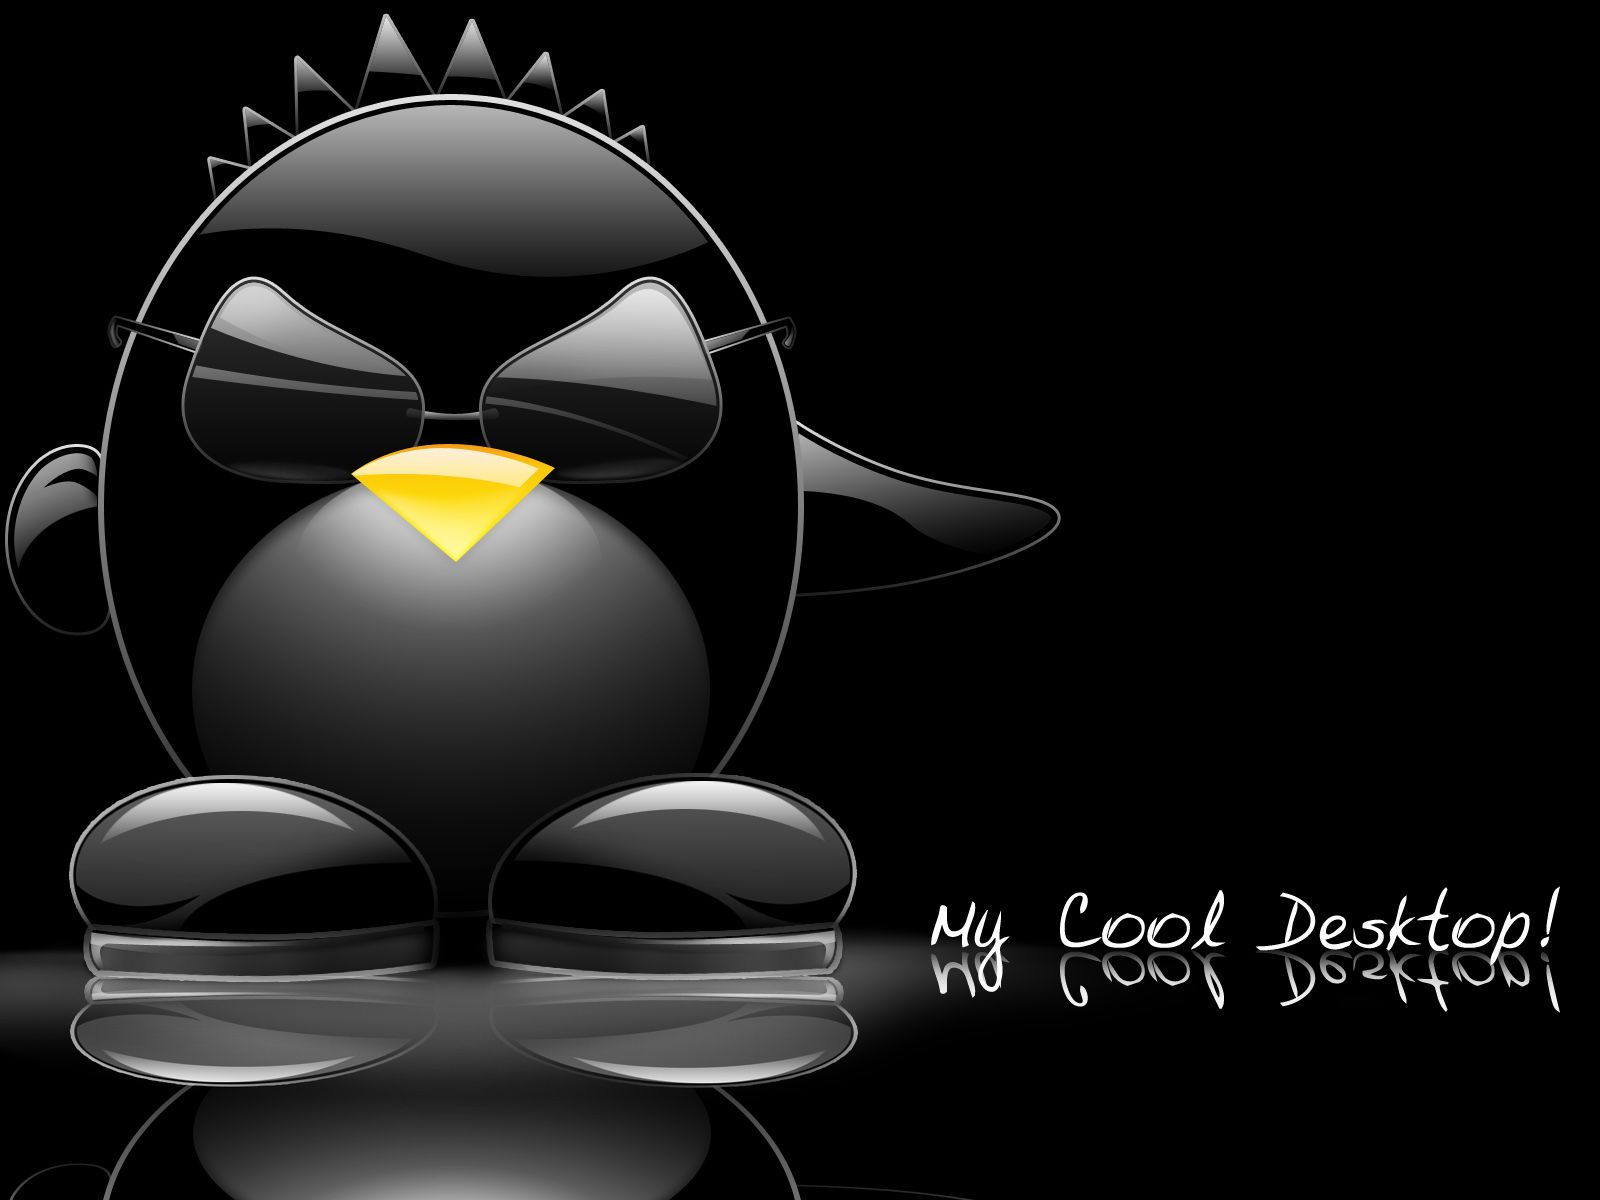 Cool free cool dekstop wallpaper hd 10847 wallpaper - Cool moving wallpapers for computer ...